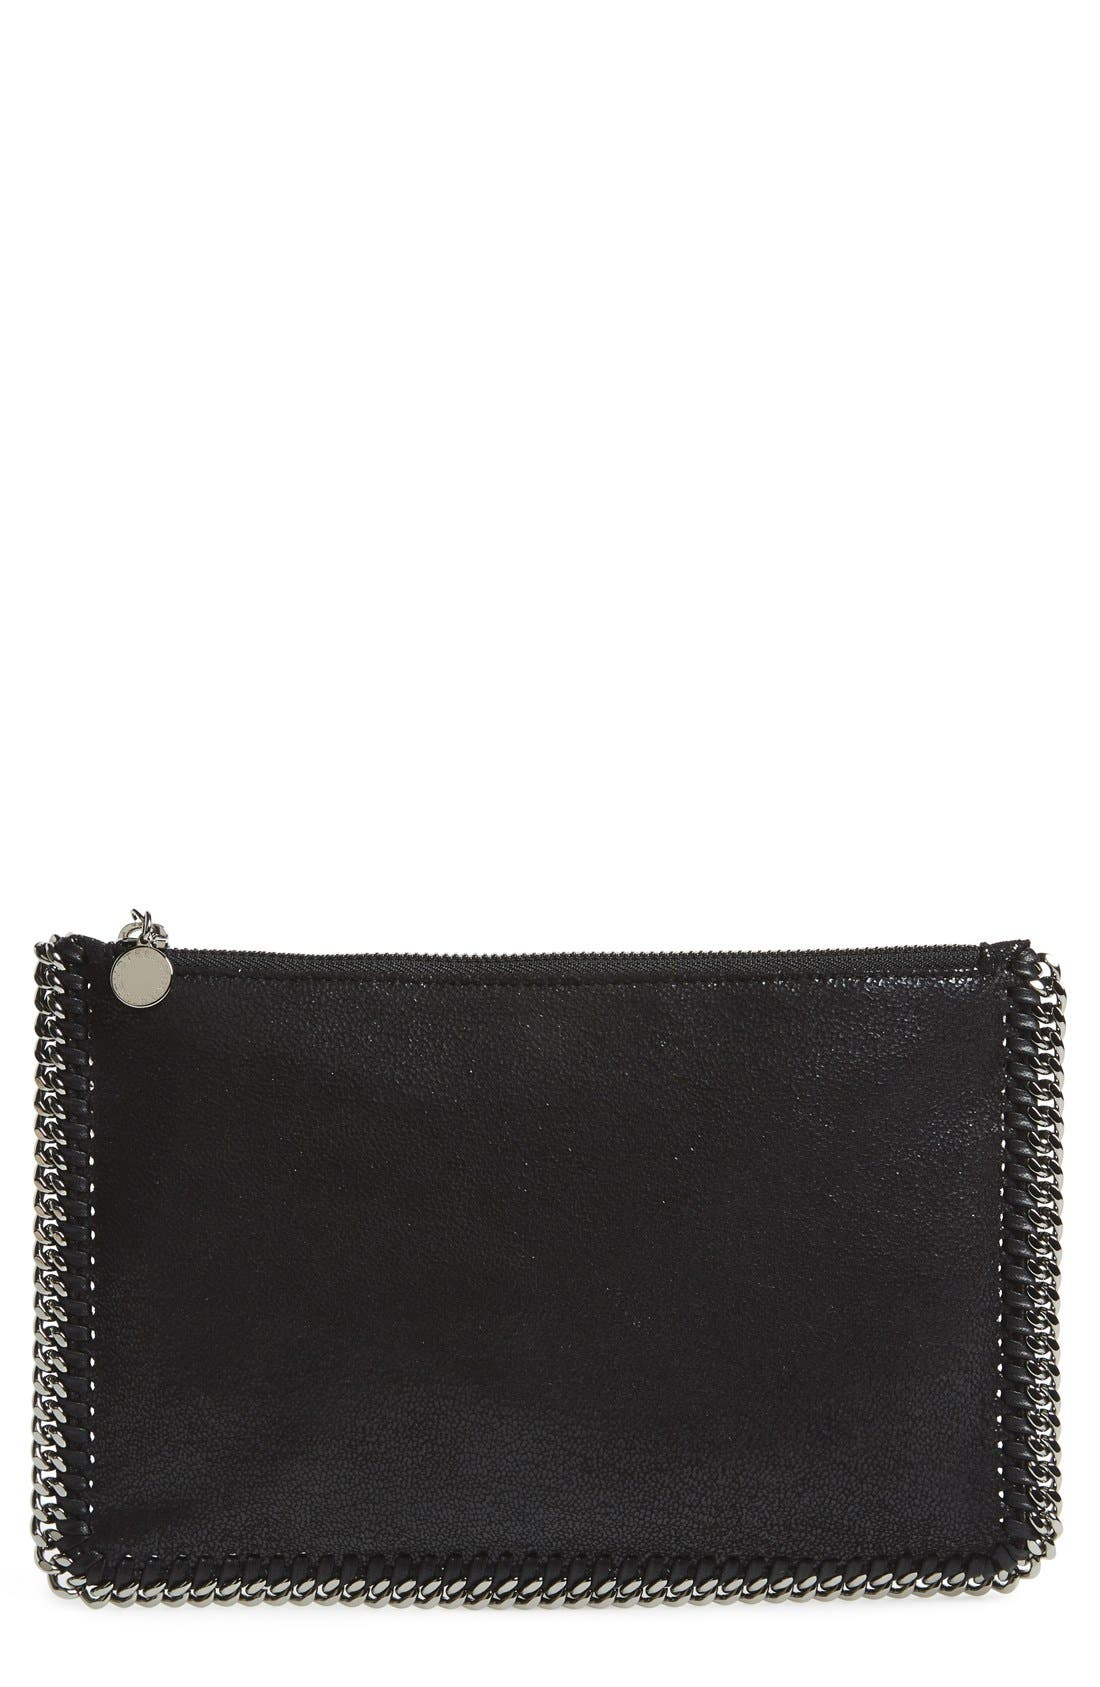 'Falabella' Faux Leather Pouch with Convertible Strap,                             Main thumbnail 1, color,                             002